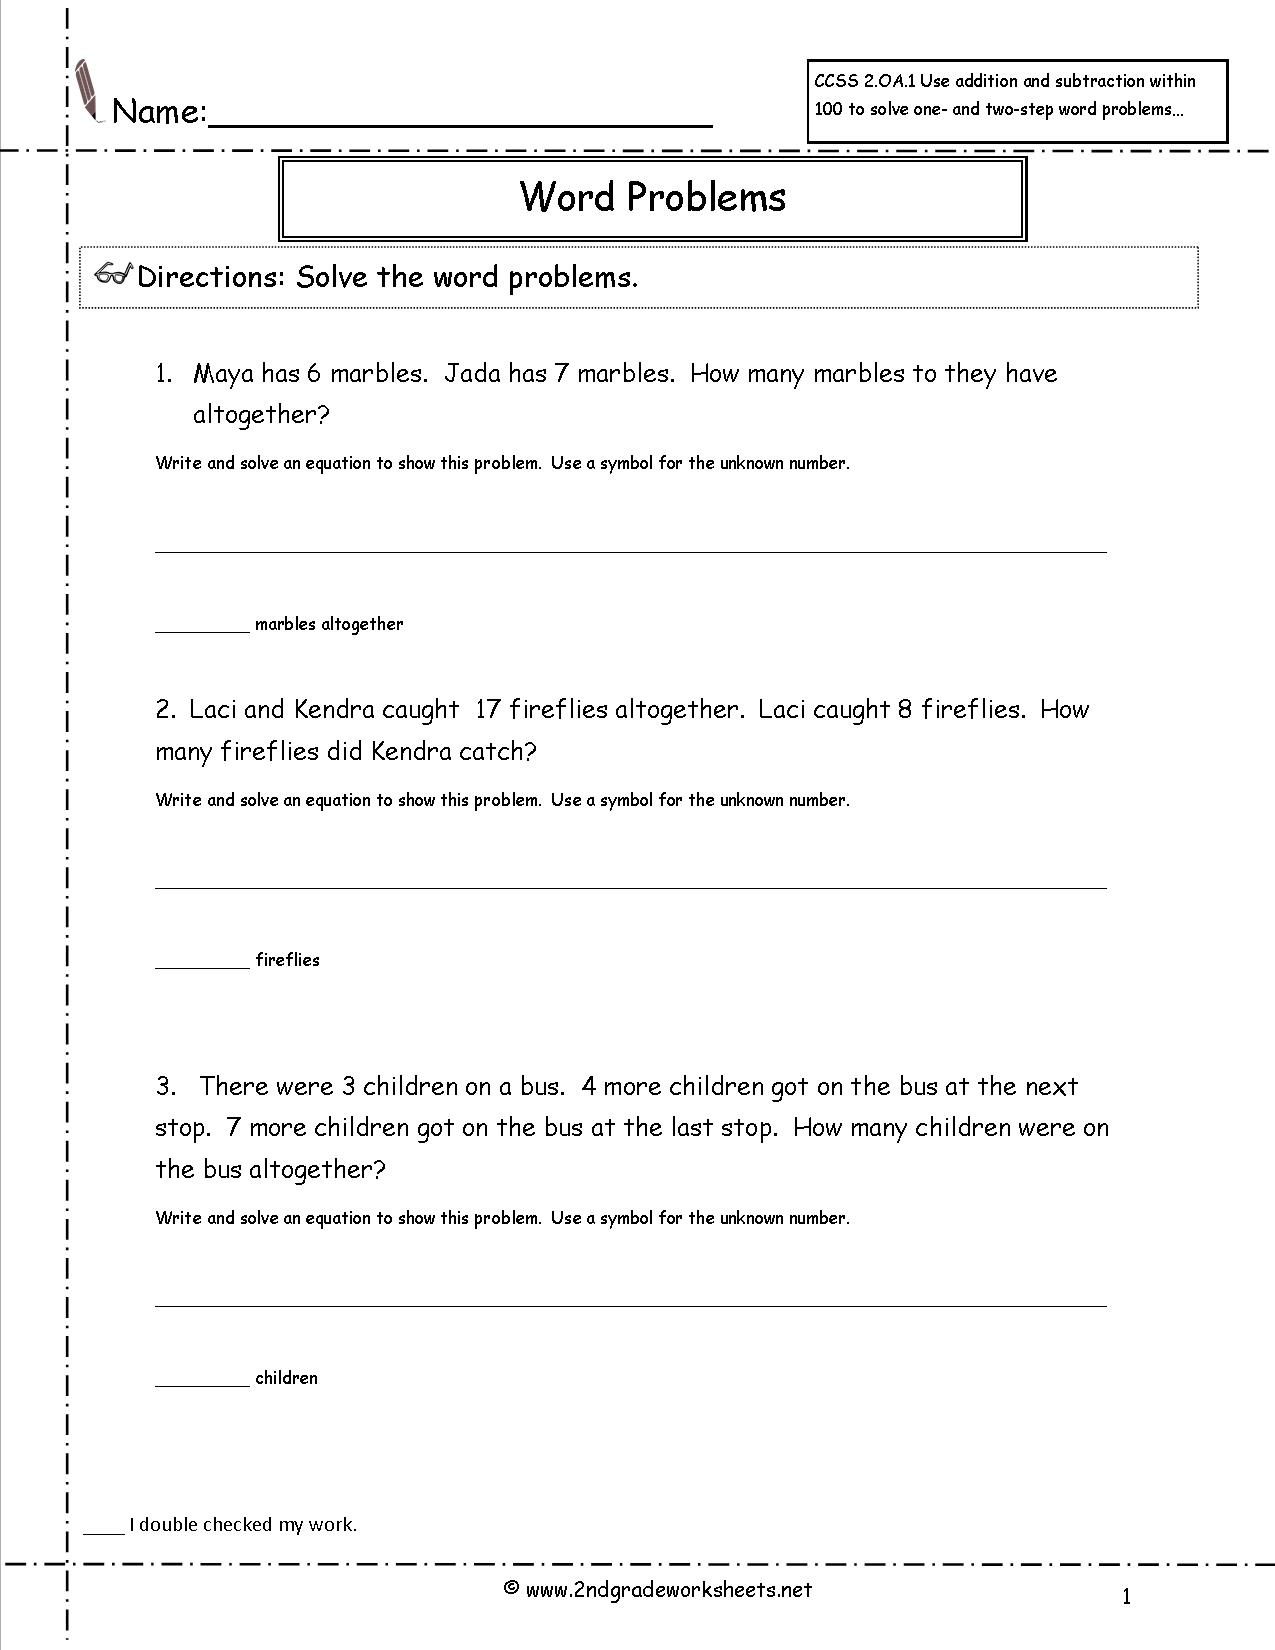 12 Best Images Of Common Core Math Worksheets